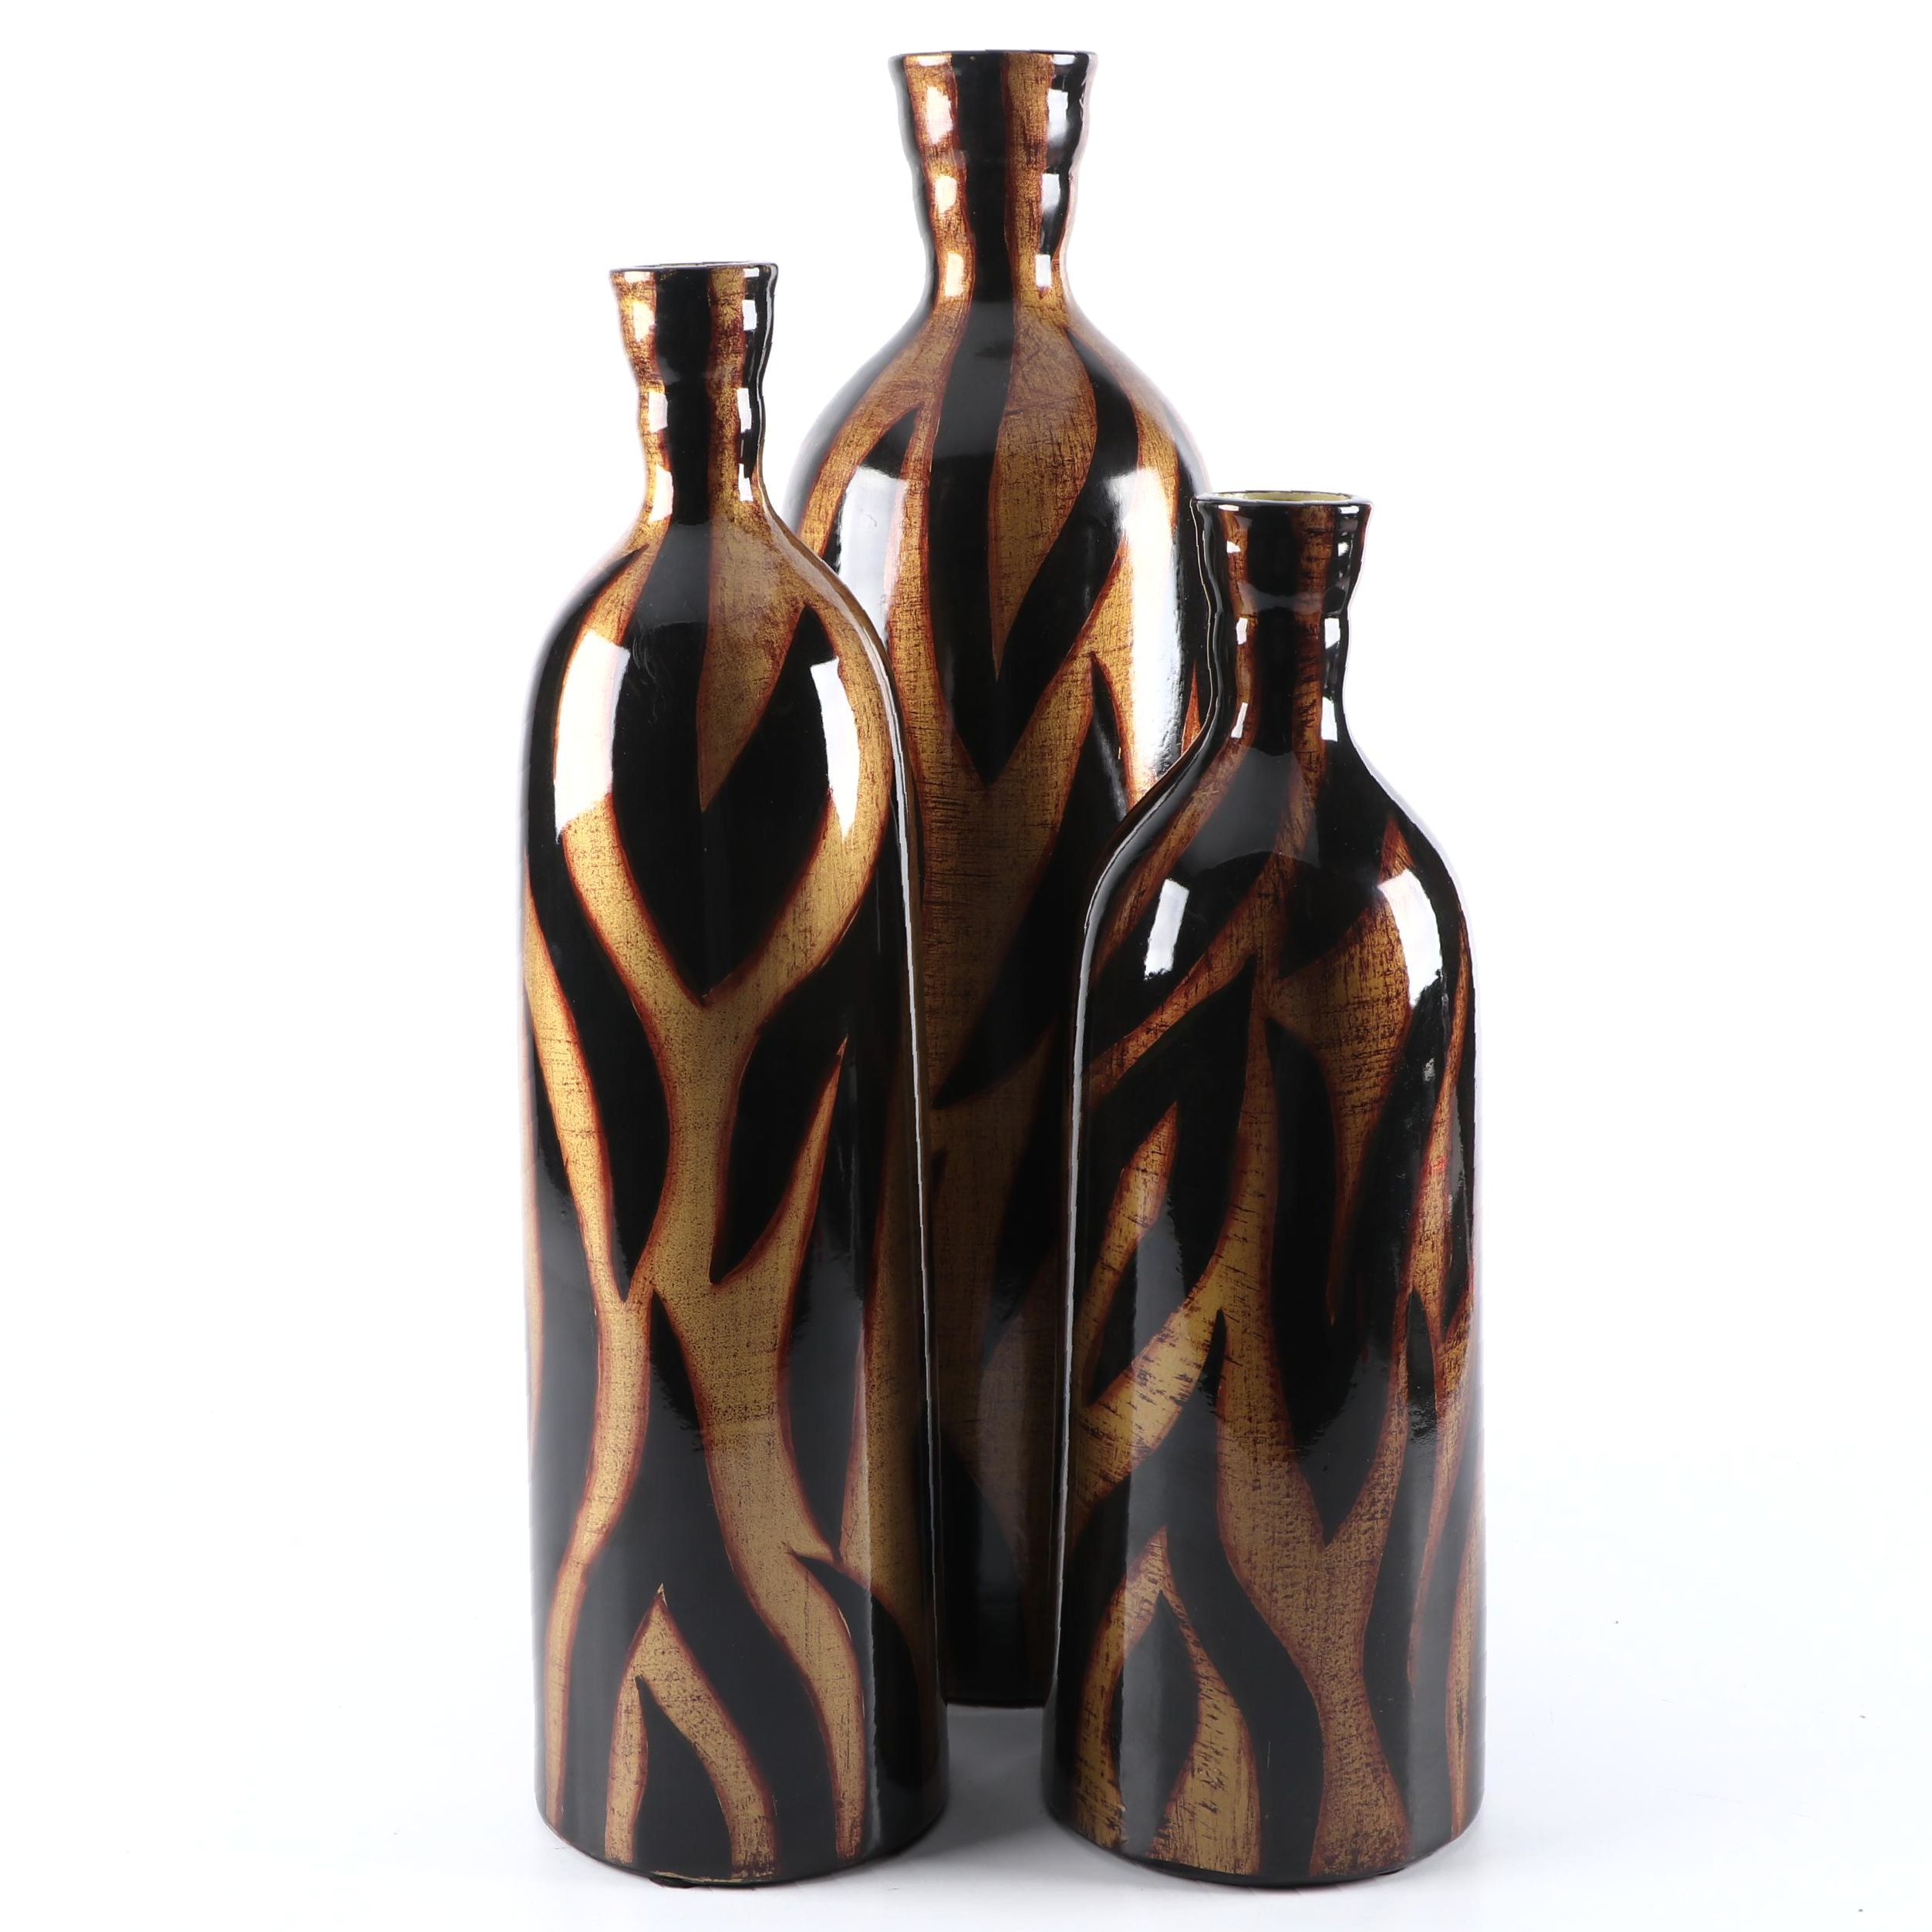 Contemporary Bottle Shaped Glass Vases